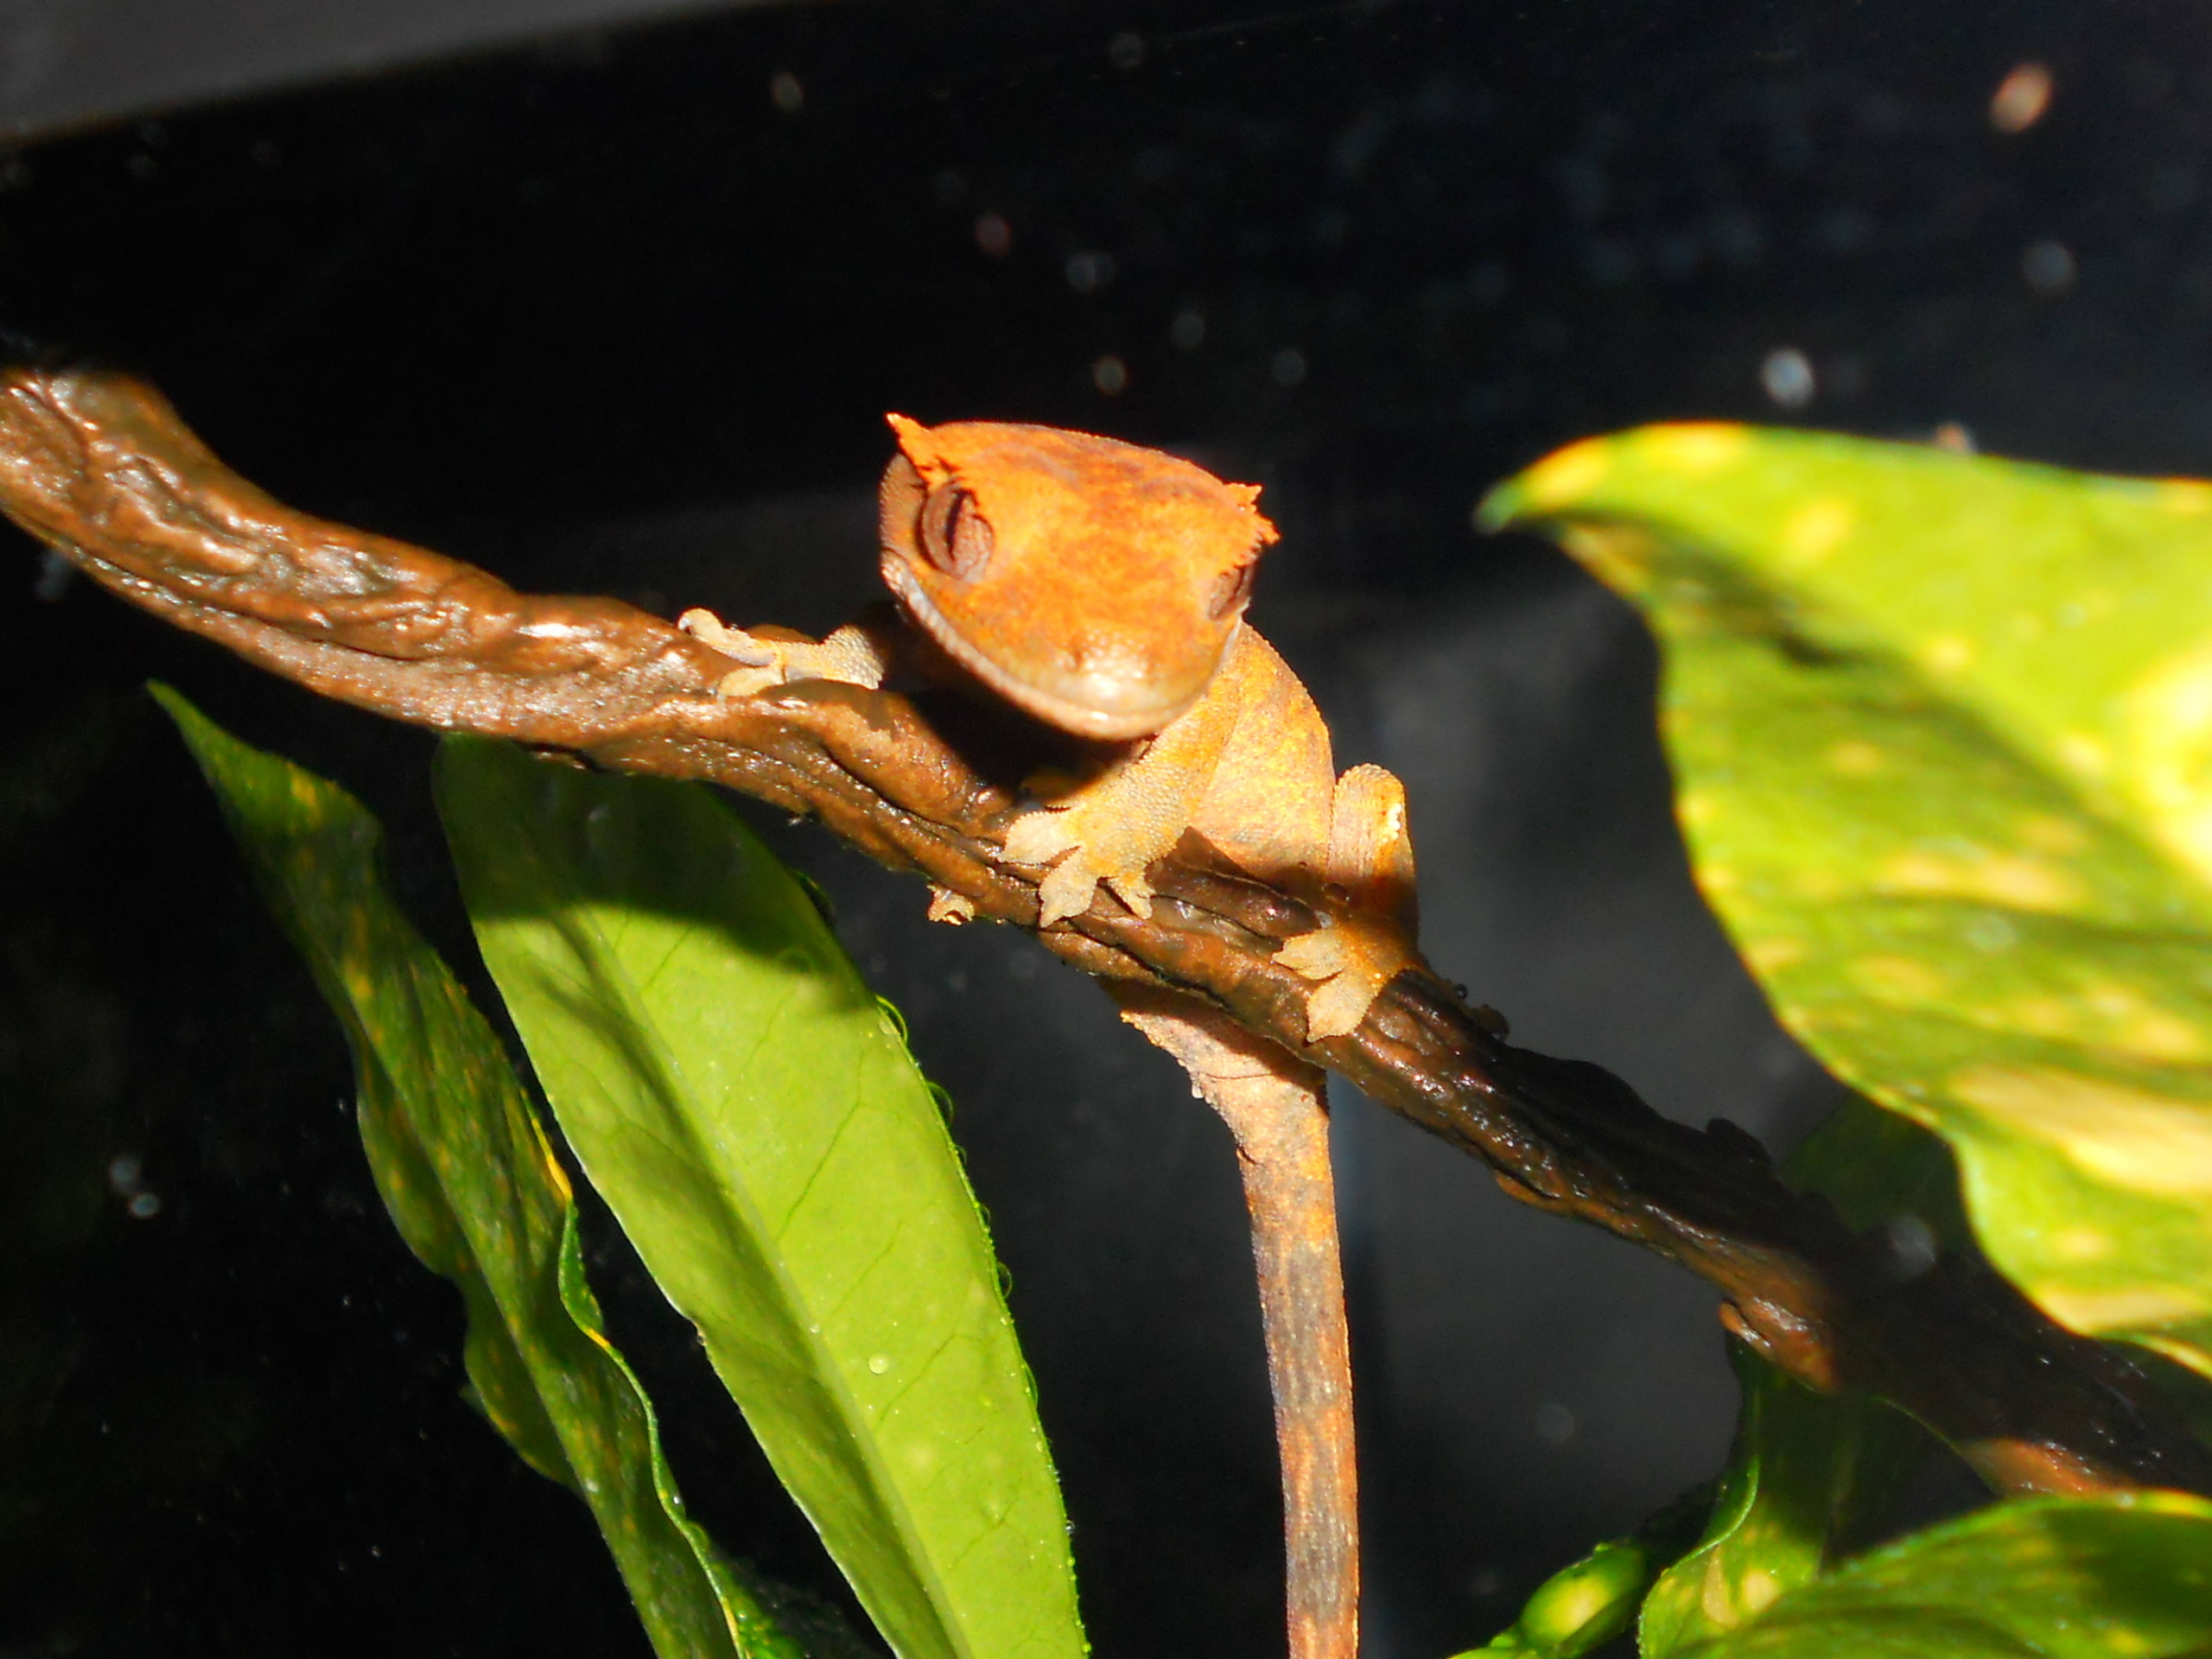 Reptiles Images Skeeter Crested Gecko Hd Wallpaper And